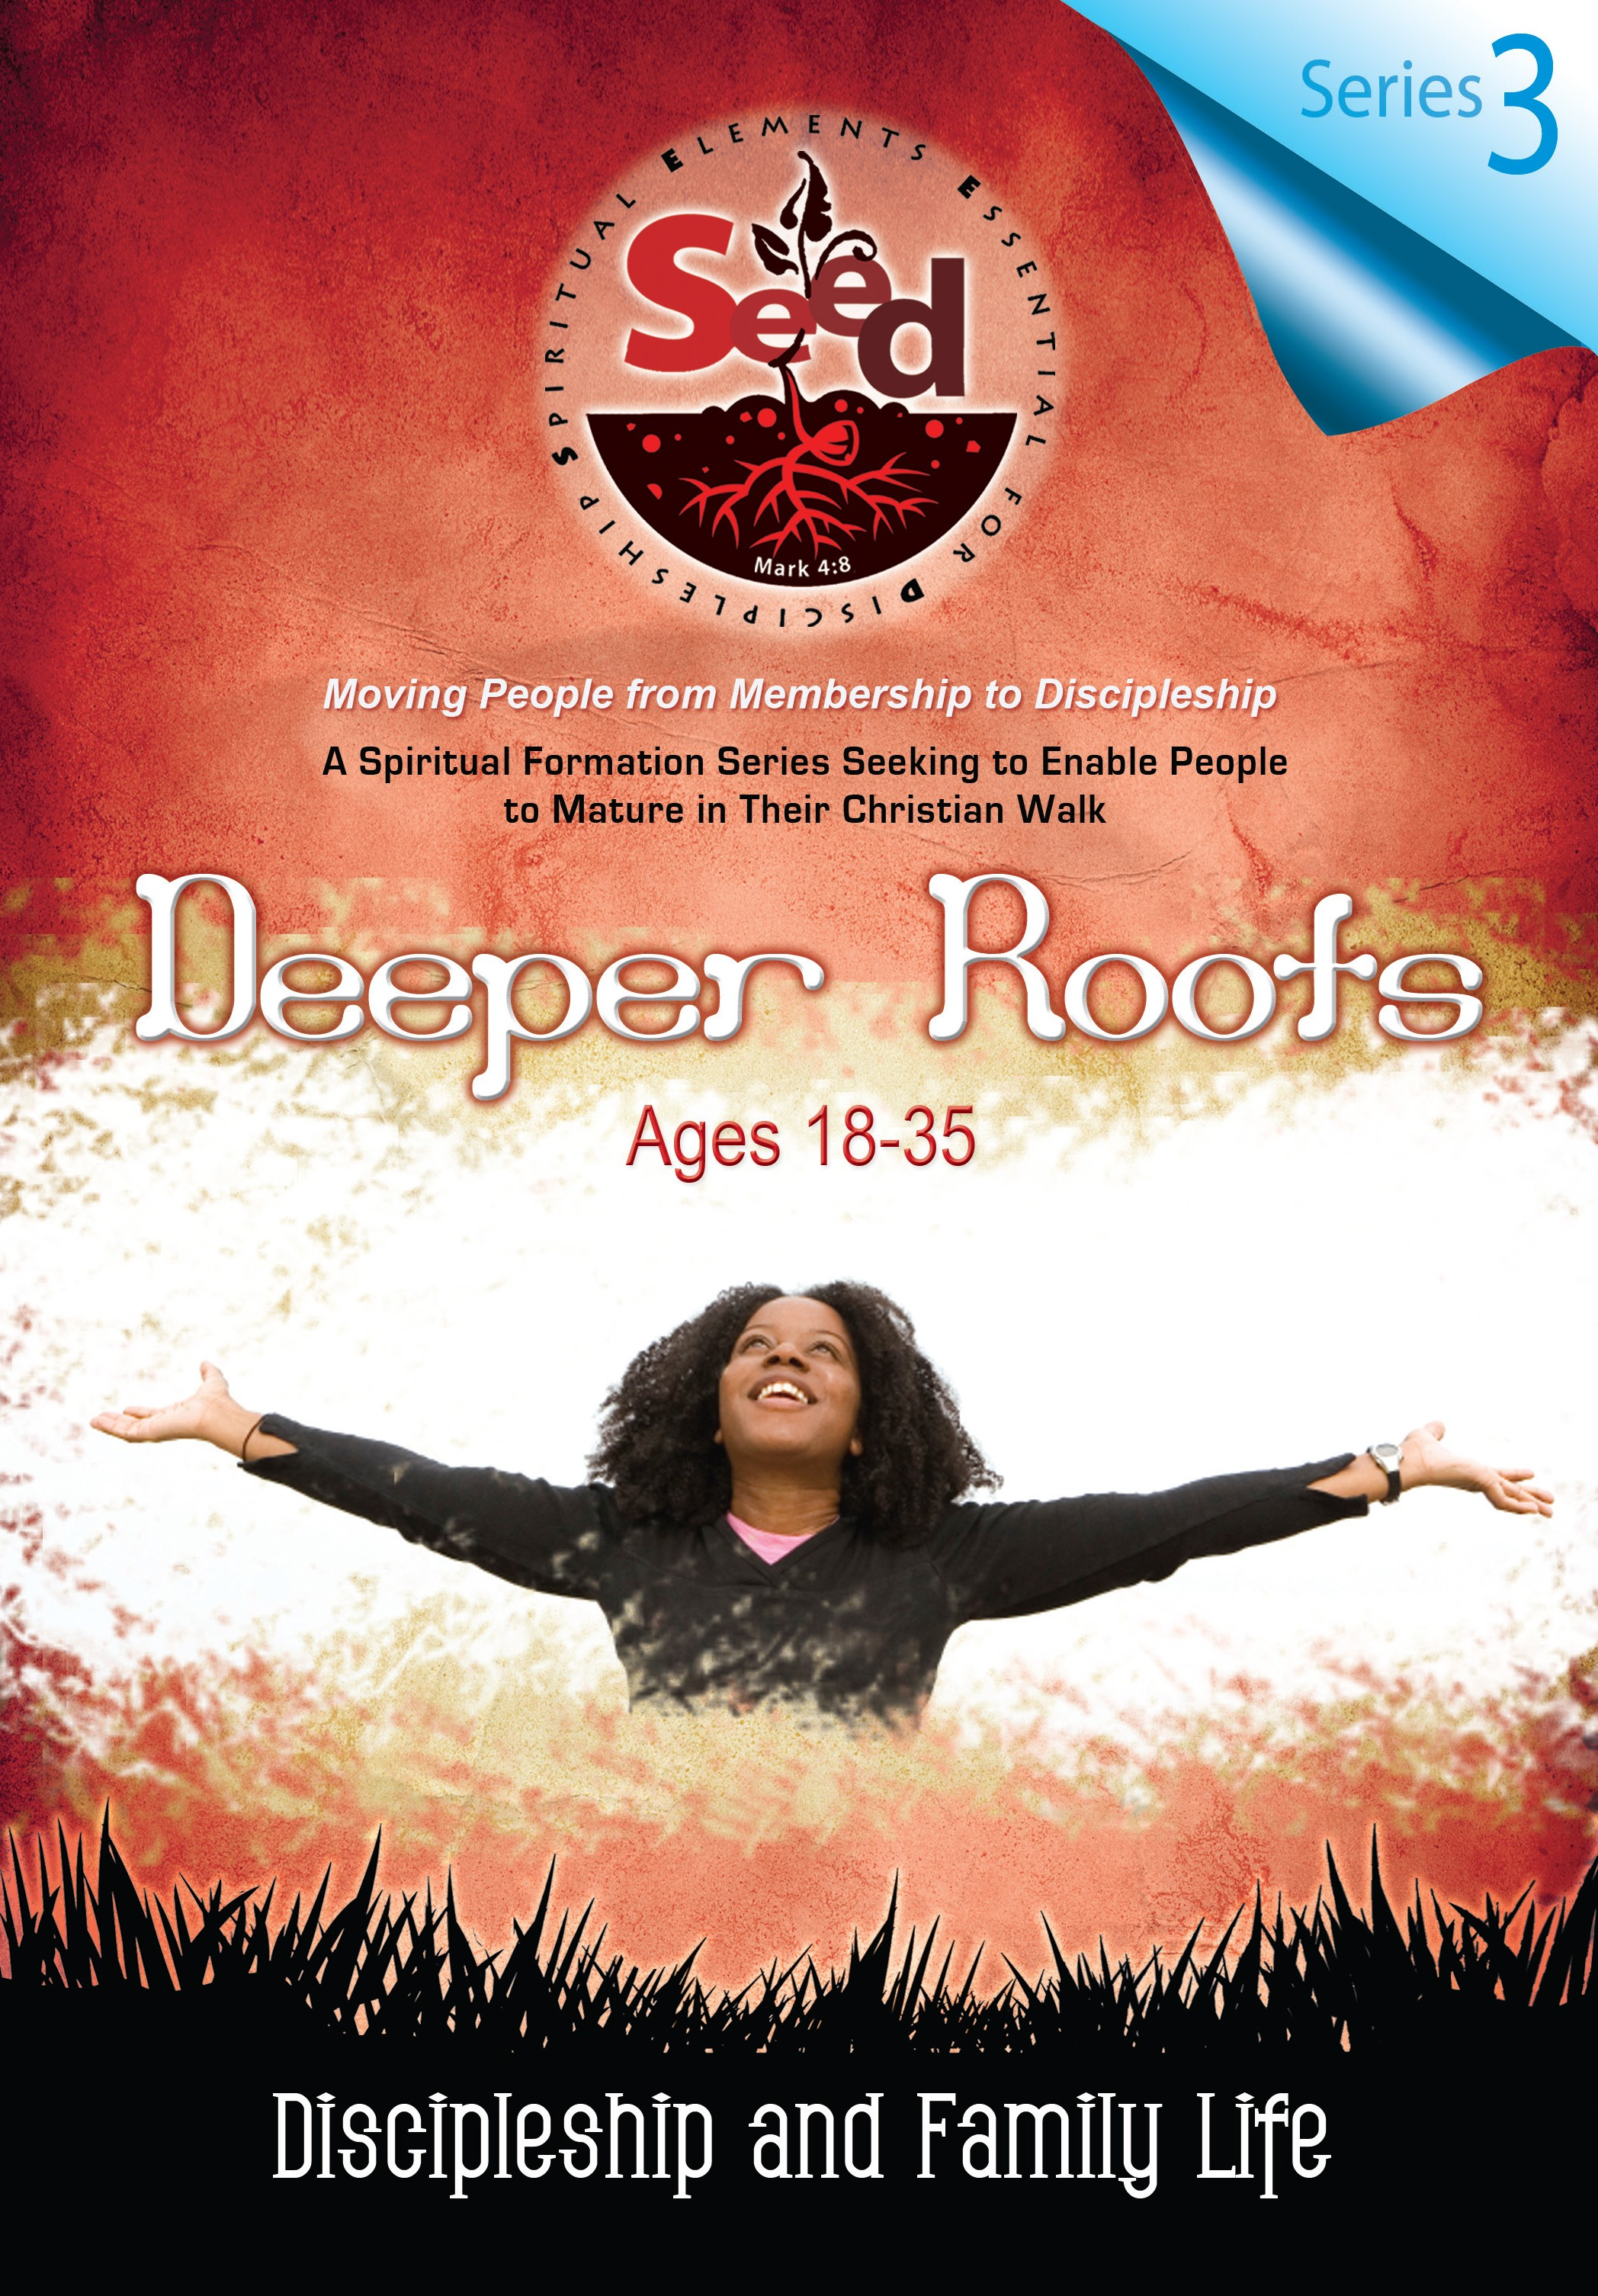 SEED Deeper Roots (Ages 18-35): Series 3: Discipleship and Family Life